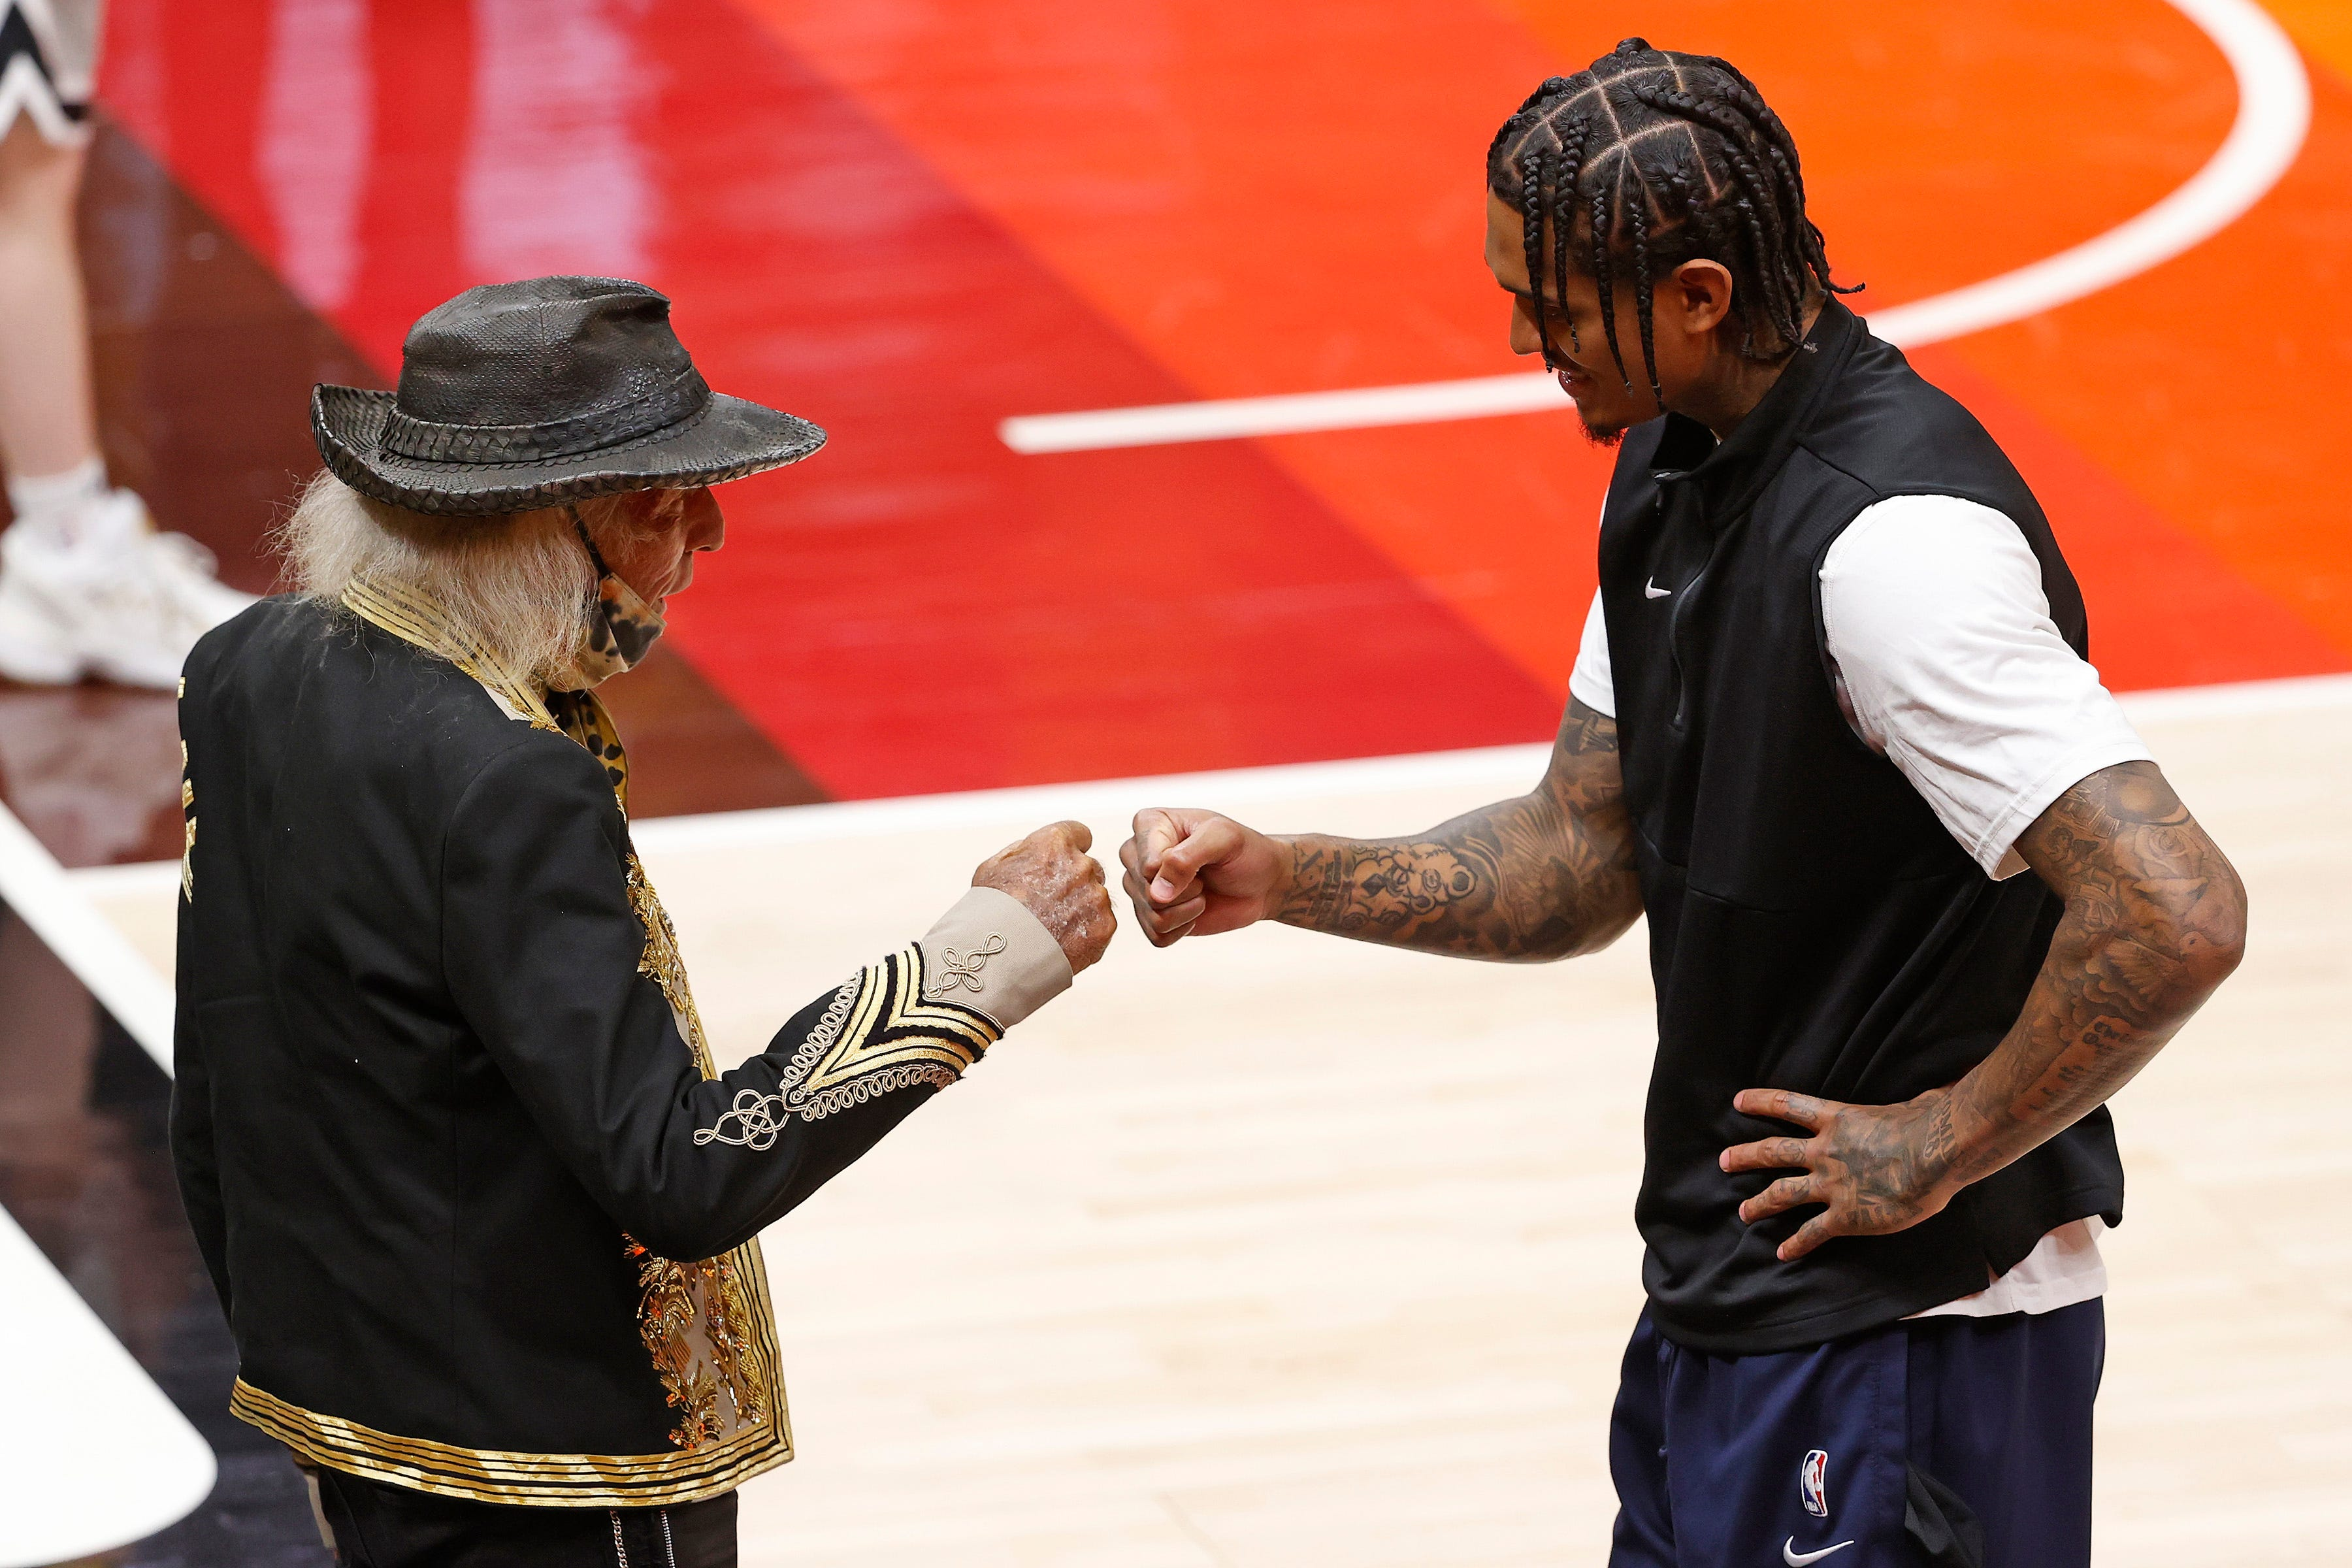 Celebs turn out for playoffs as NBA welcomes fans